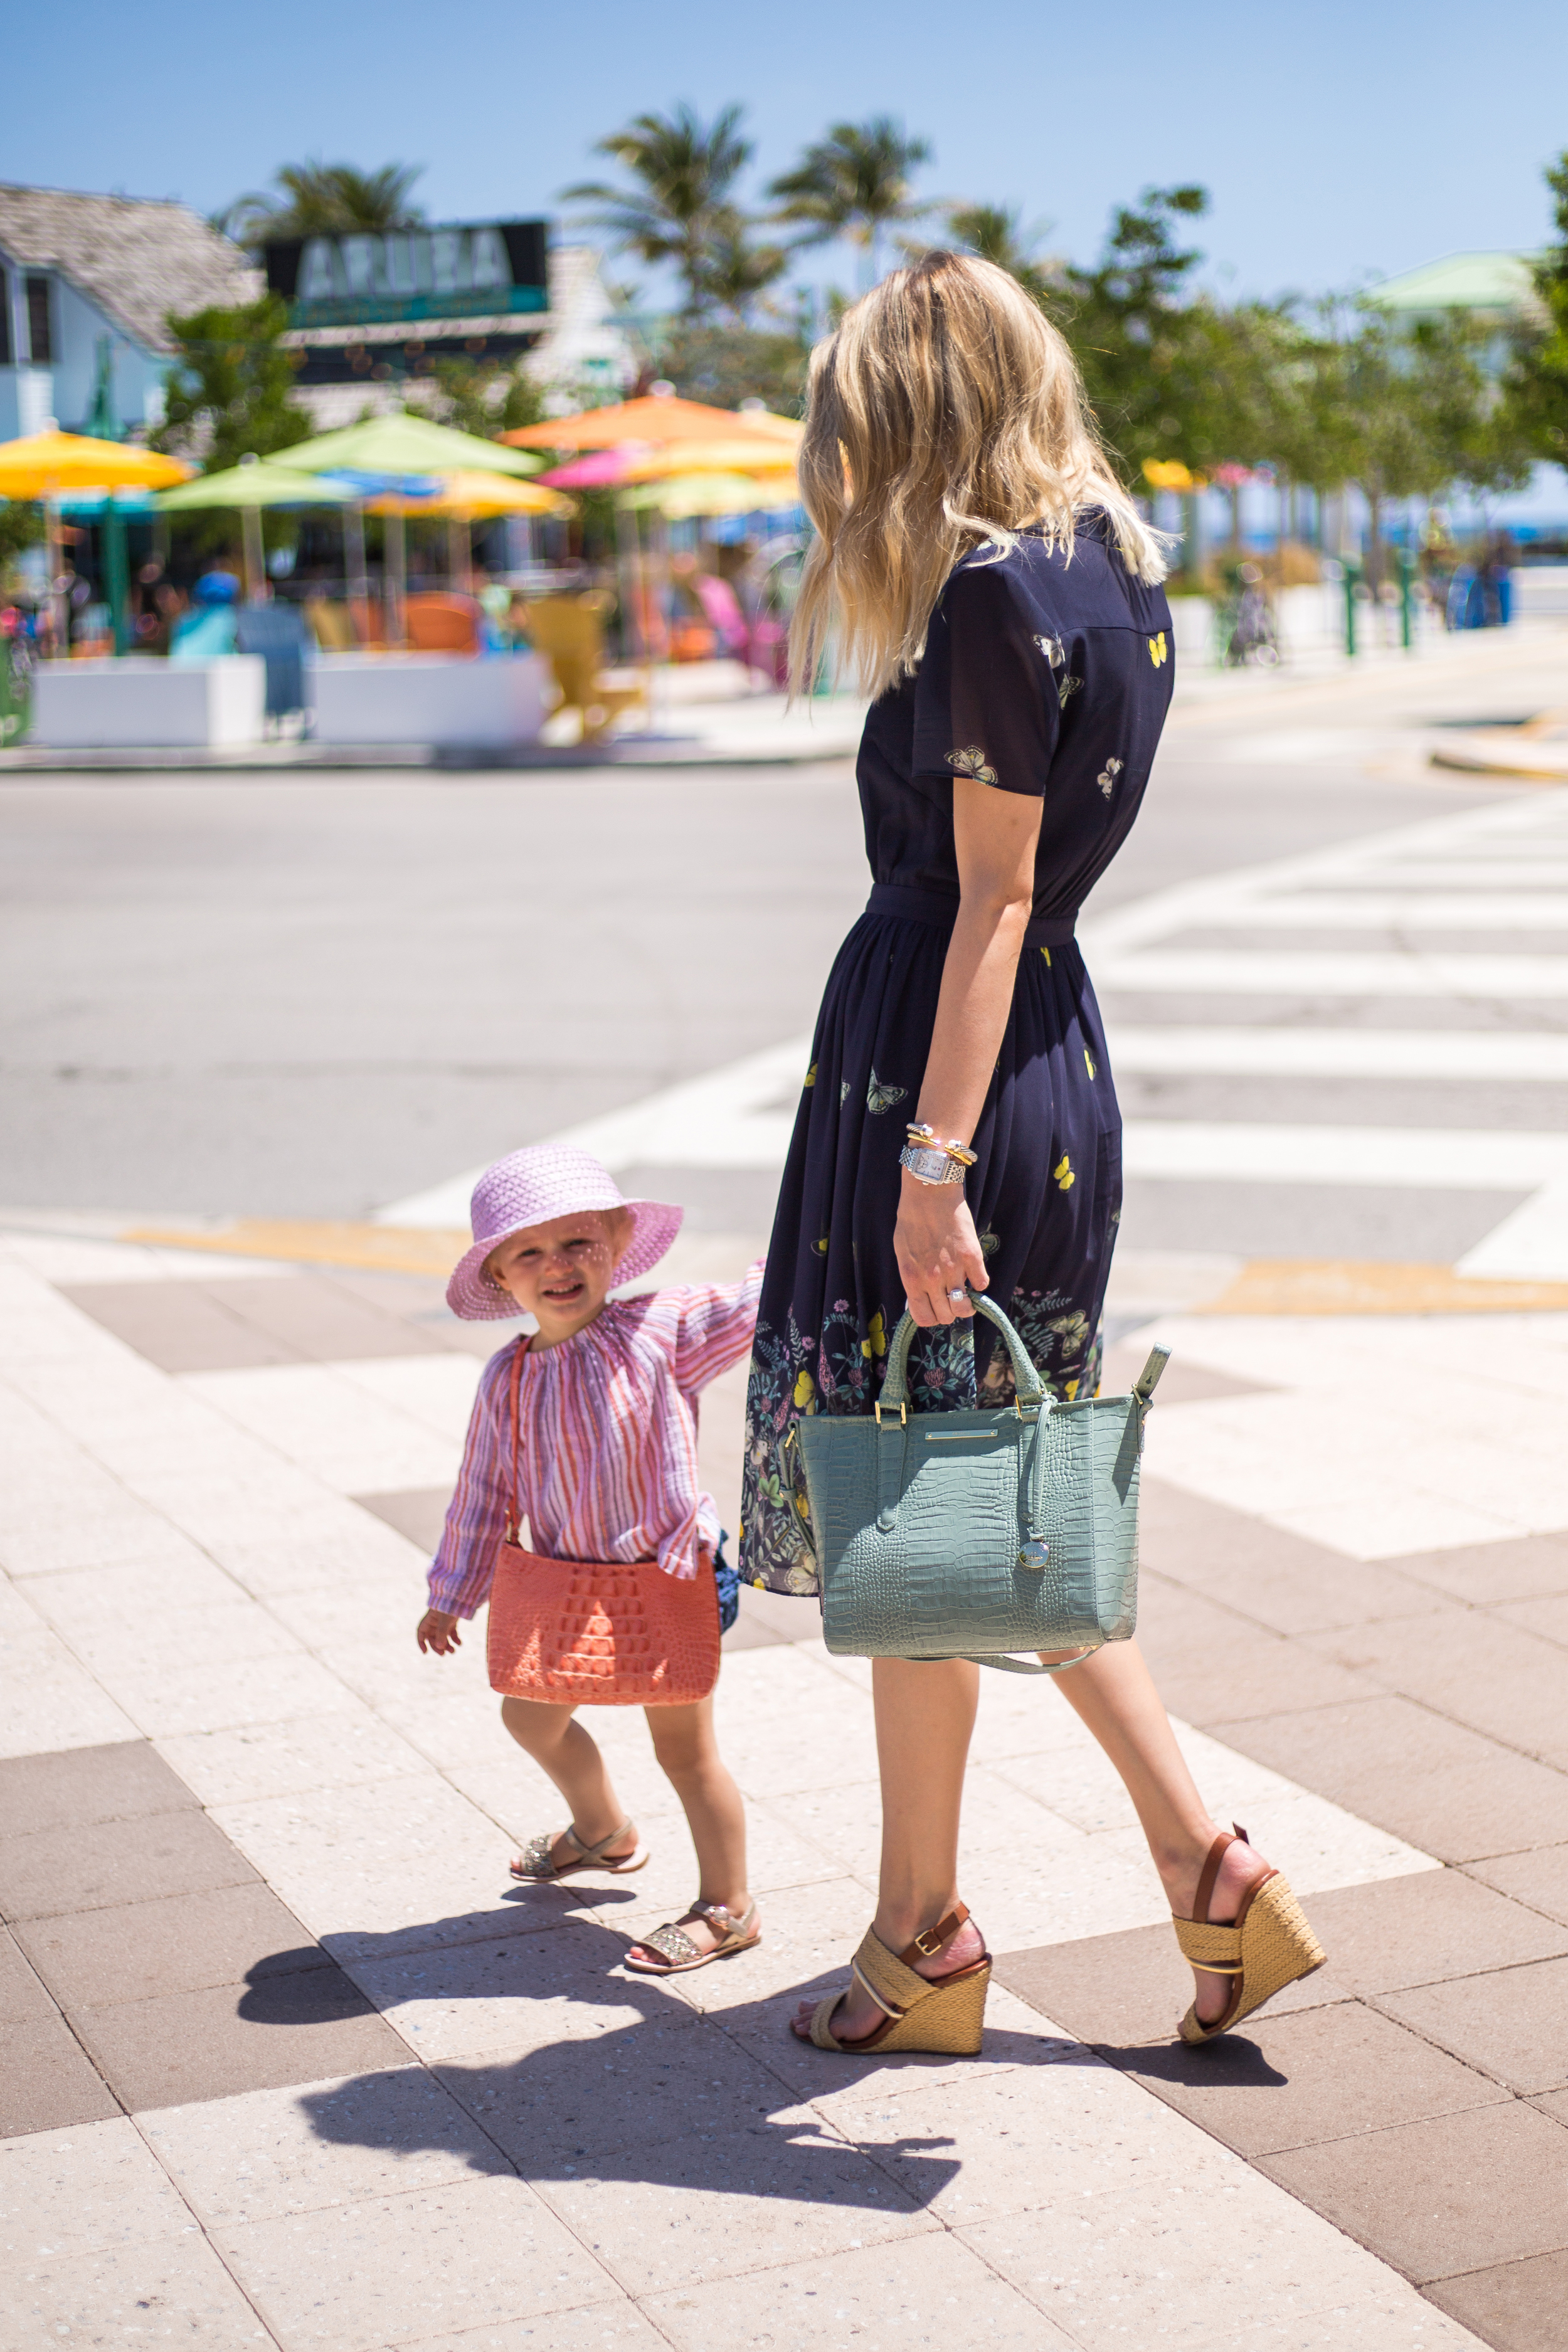 Taylor carries the  Mini Arno  in Cascade Majestic, Maddy carries the  Anytime Mini in Creamsicle Melbourne